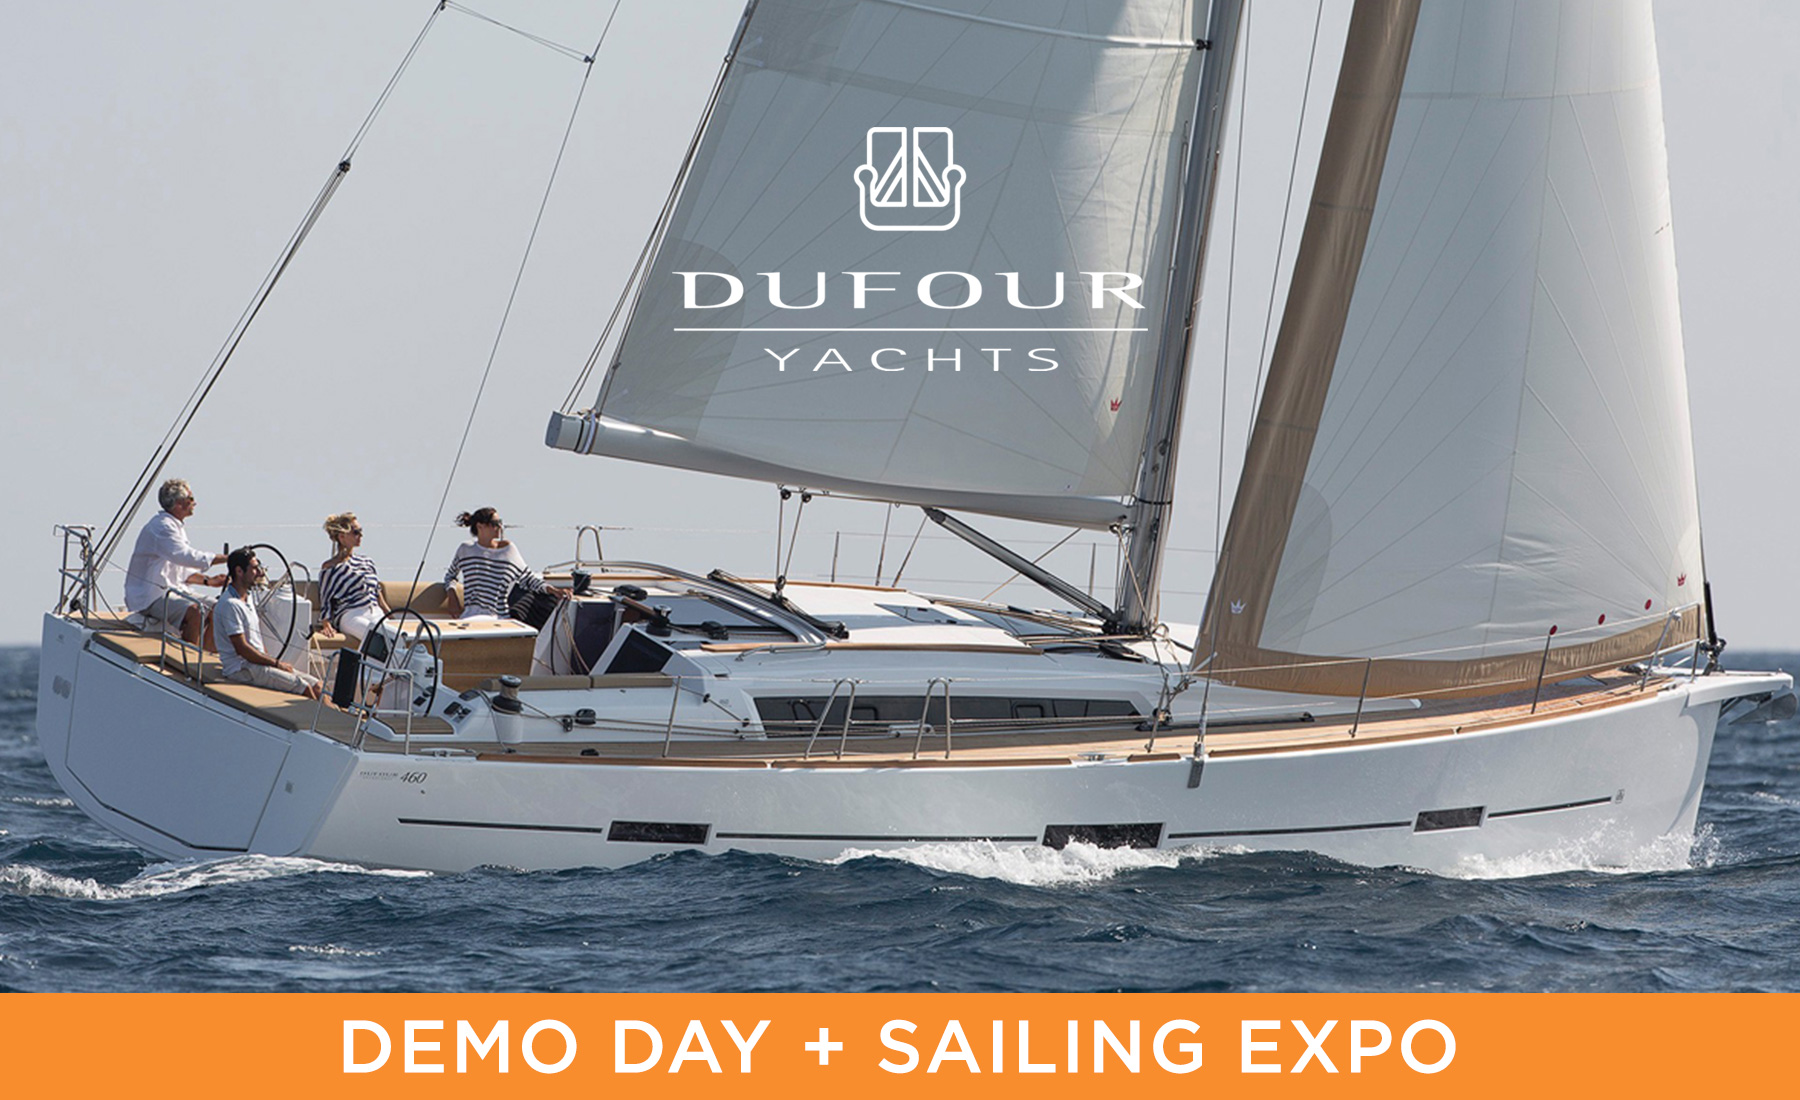 Dufour Yachts For Sale | San Diego Demo Day